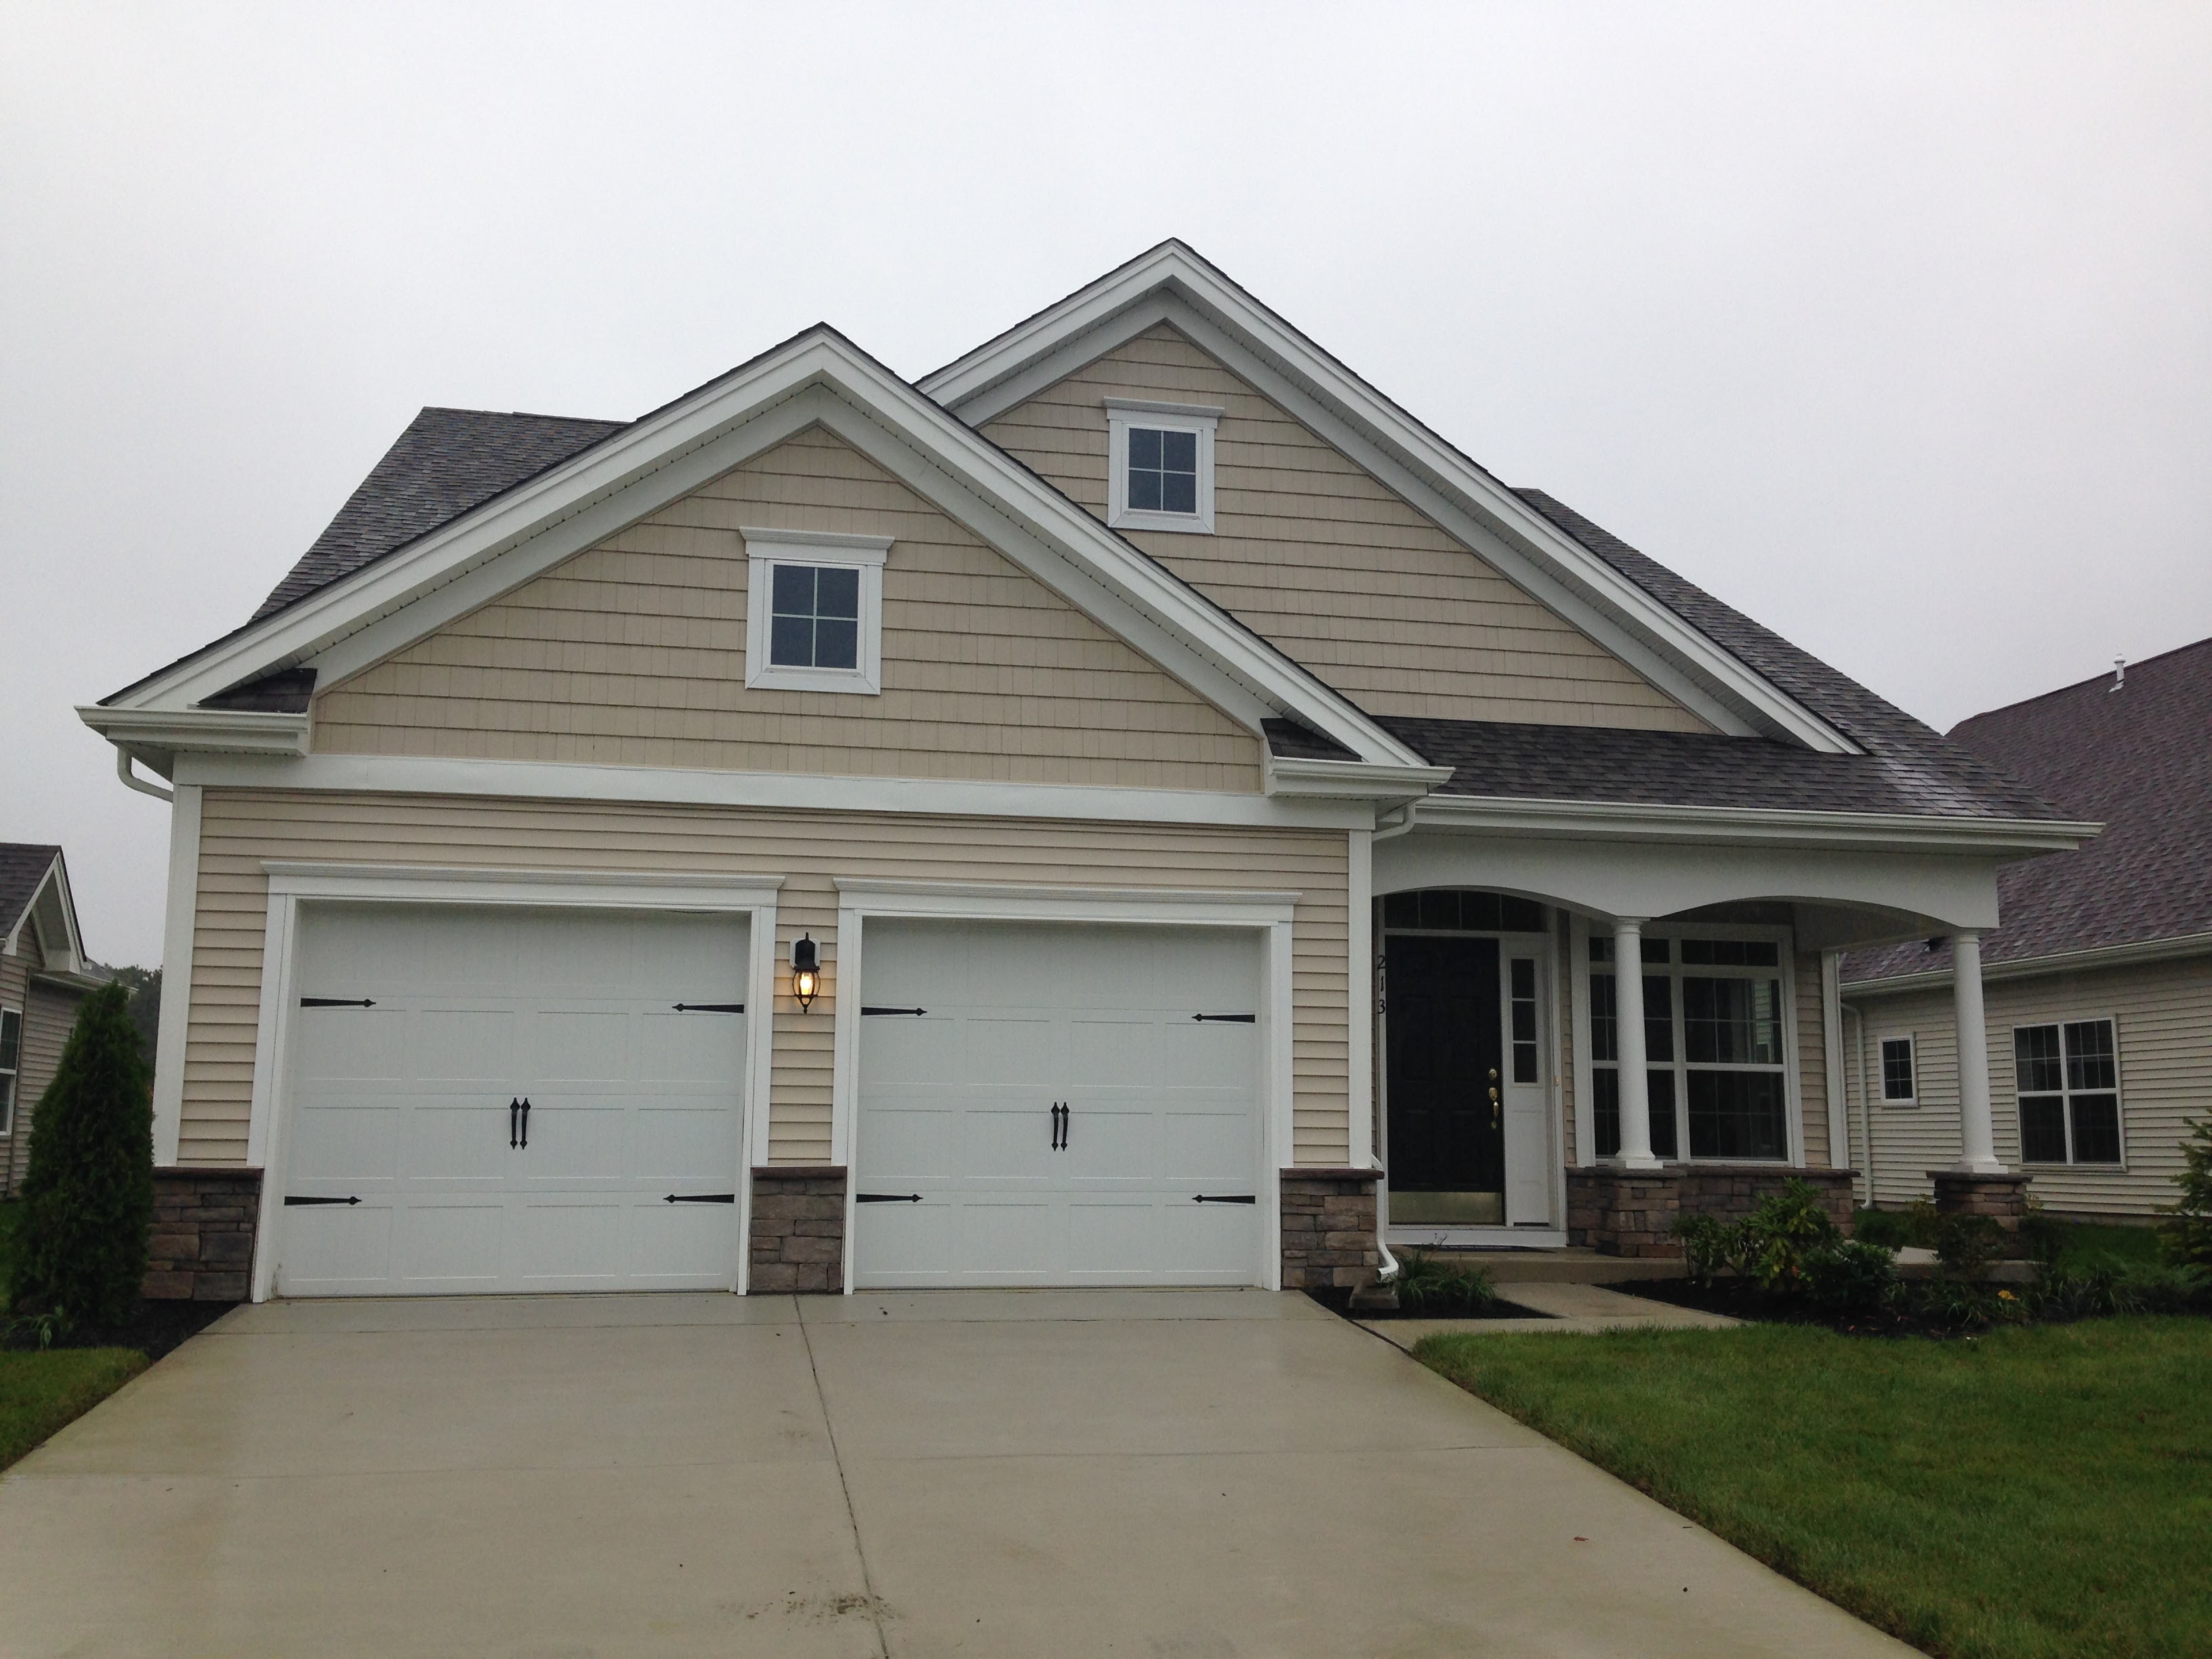 New construction open house immediate occupancy south for New home construction in south jersey